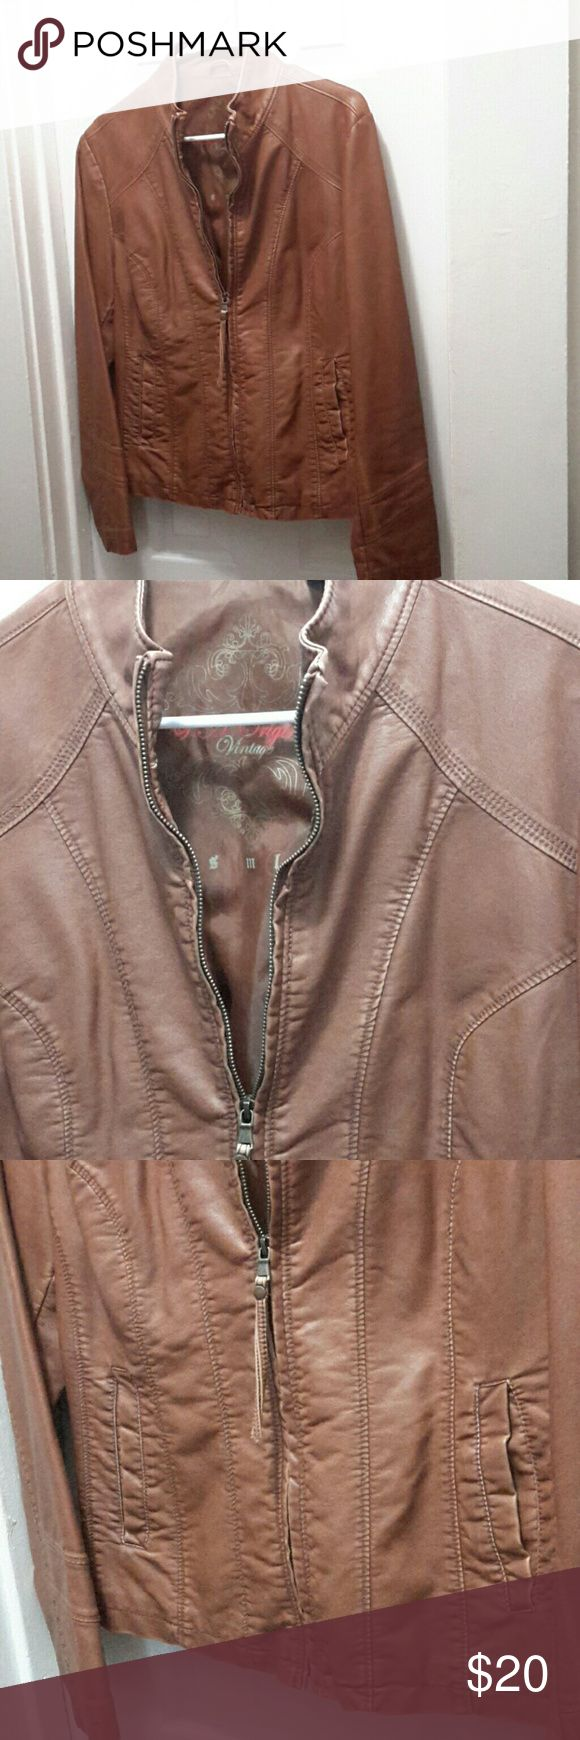 Price cut, New, Faux leather cool jacket. New, Faux leather cool jacket., has that worn look to it, that's how they are. It's a golden tan in gold, like honey oak. Jackets & Coats Utility Jackets